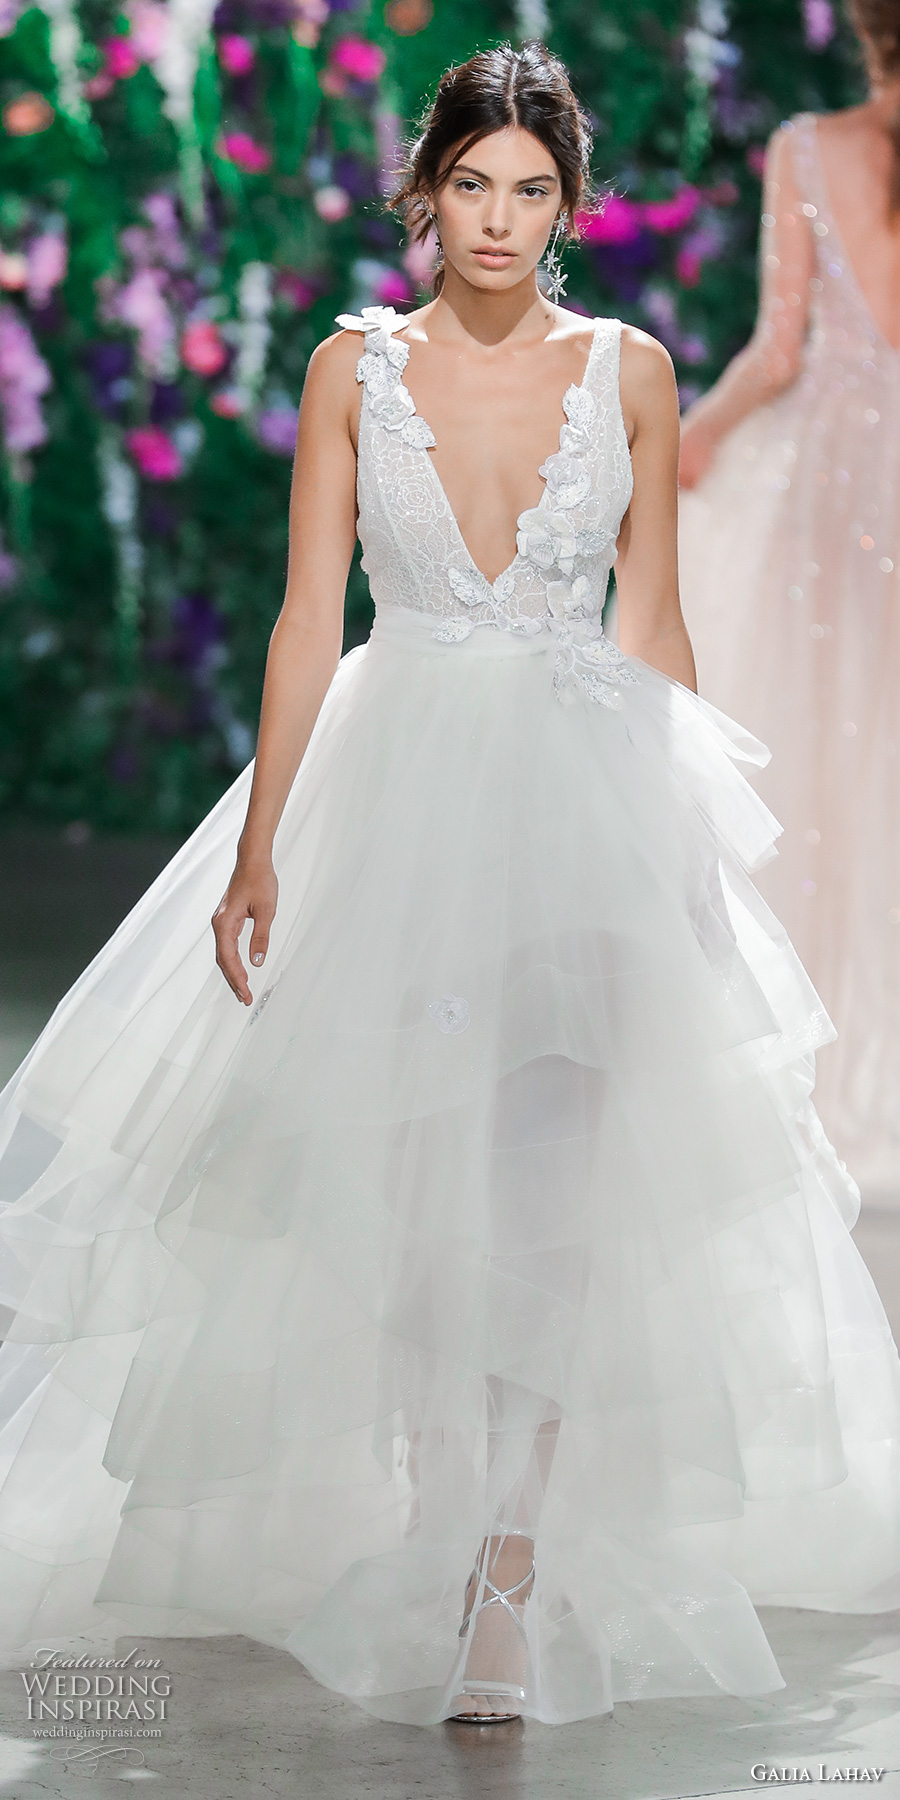 galia lahav fall 2018 bridal sleeveless deep v neck heavily embellished bodice tulle skirt layered skirt ball gown a line wedding dress (13) mv